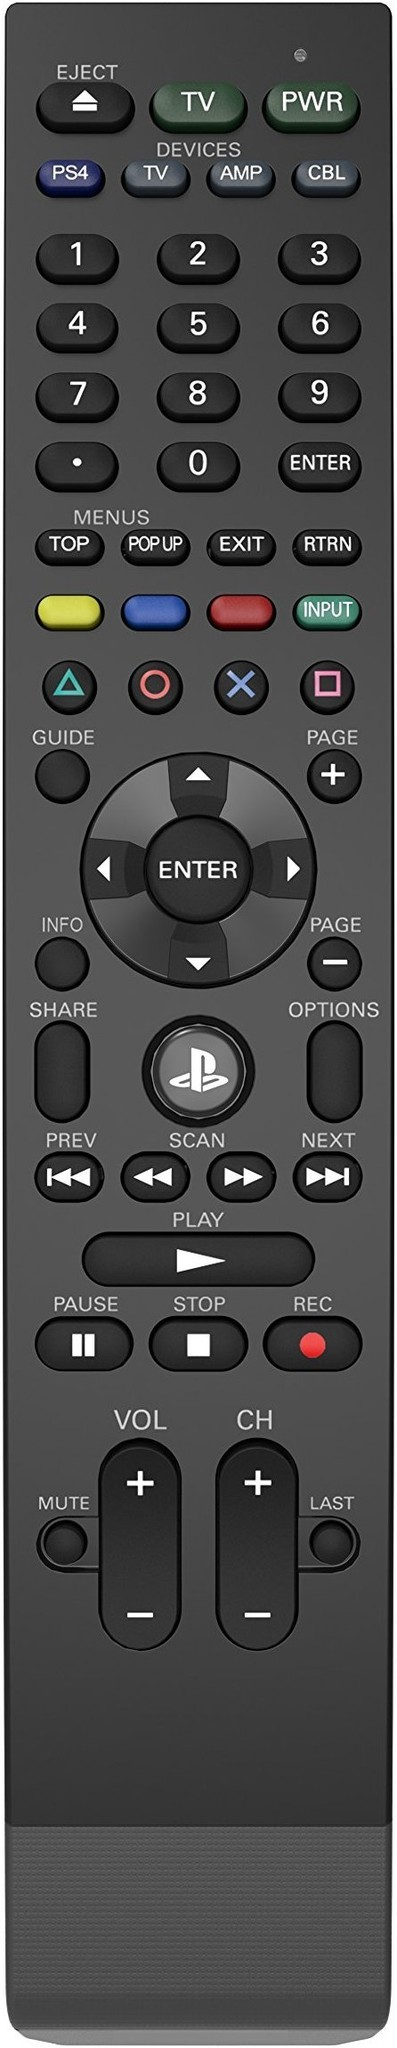 pdp-ps4-universal-remote.jpg?itok=9gY1pX